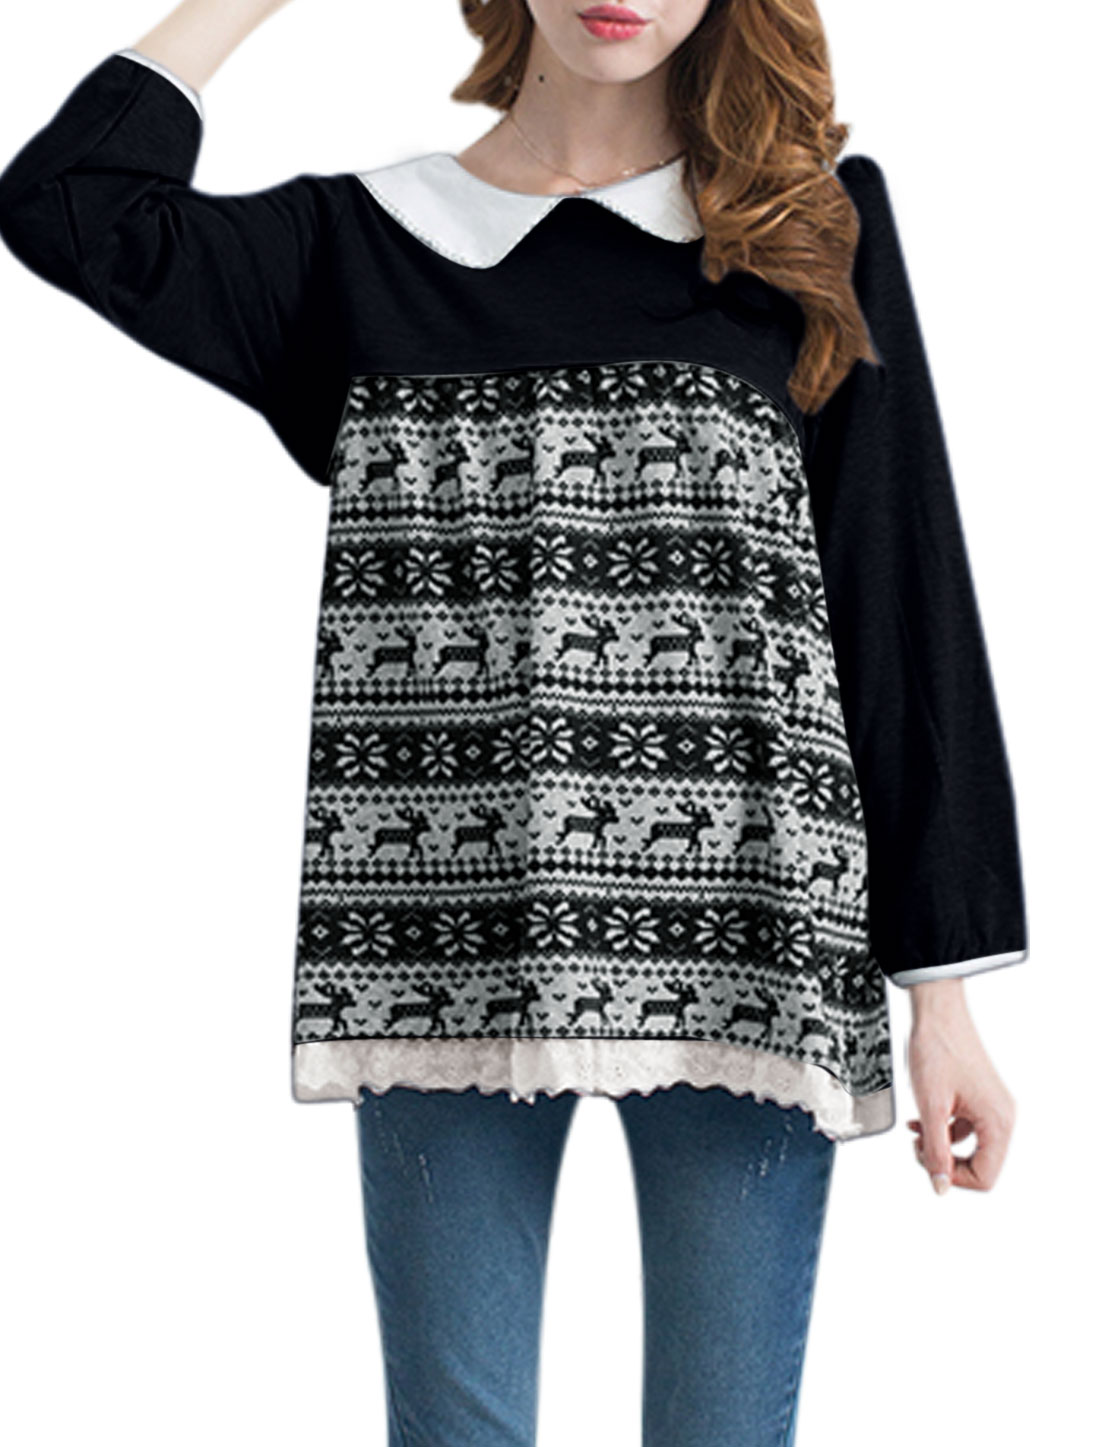 XK18 Maternity Peter Pan Collar Geometric Deer Pattern Casual Top Navy Blue L/S (US 6)